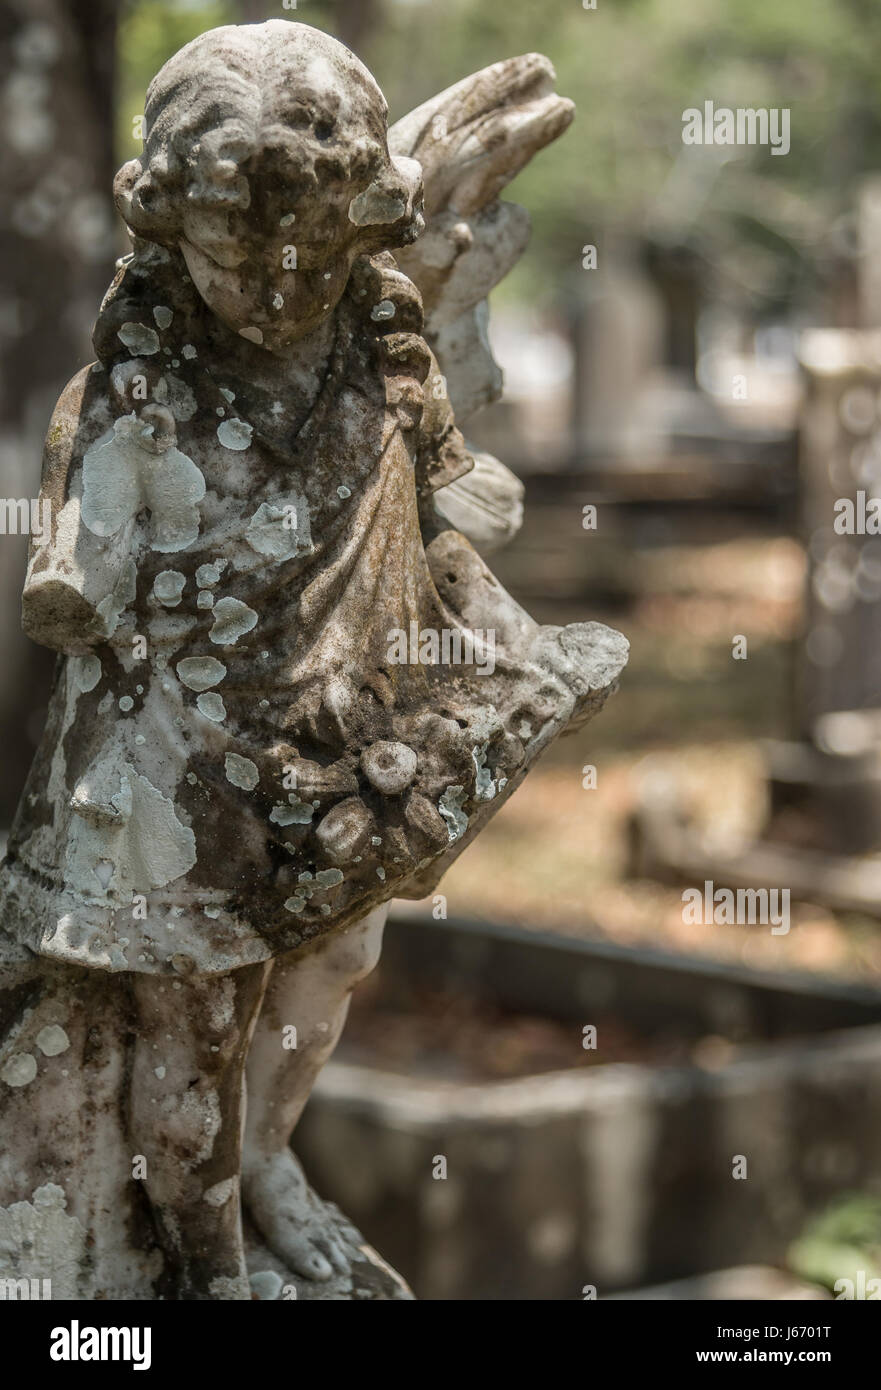 Western Road Cemetery on the island of Penang, Malaysia Stock Photo